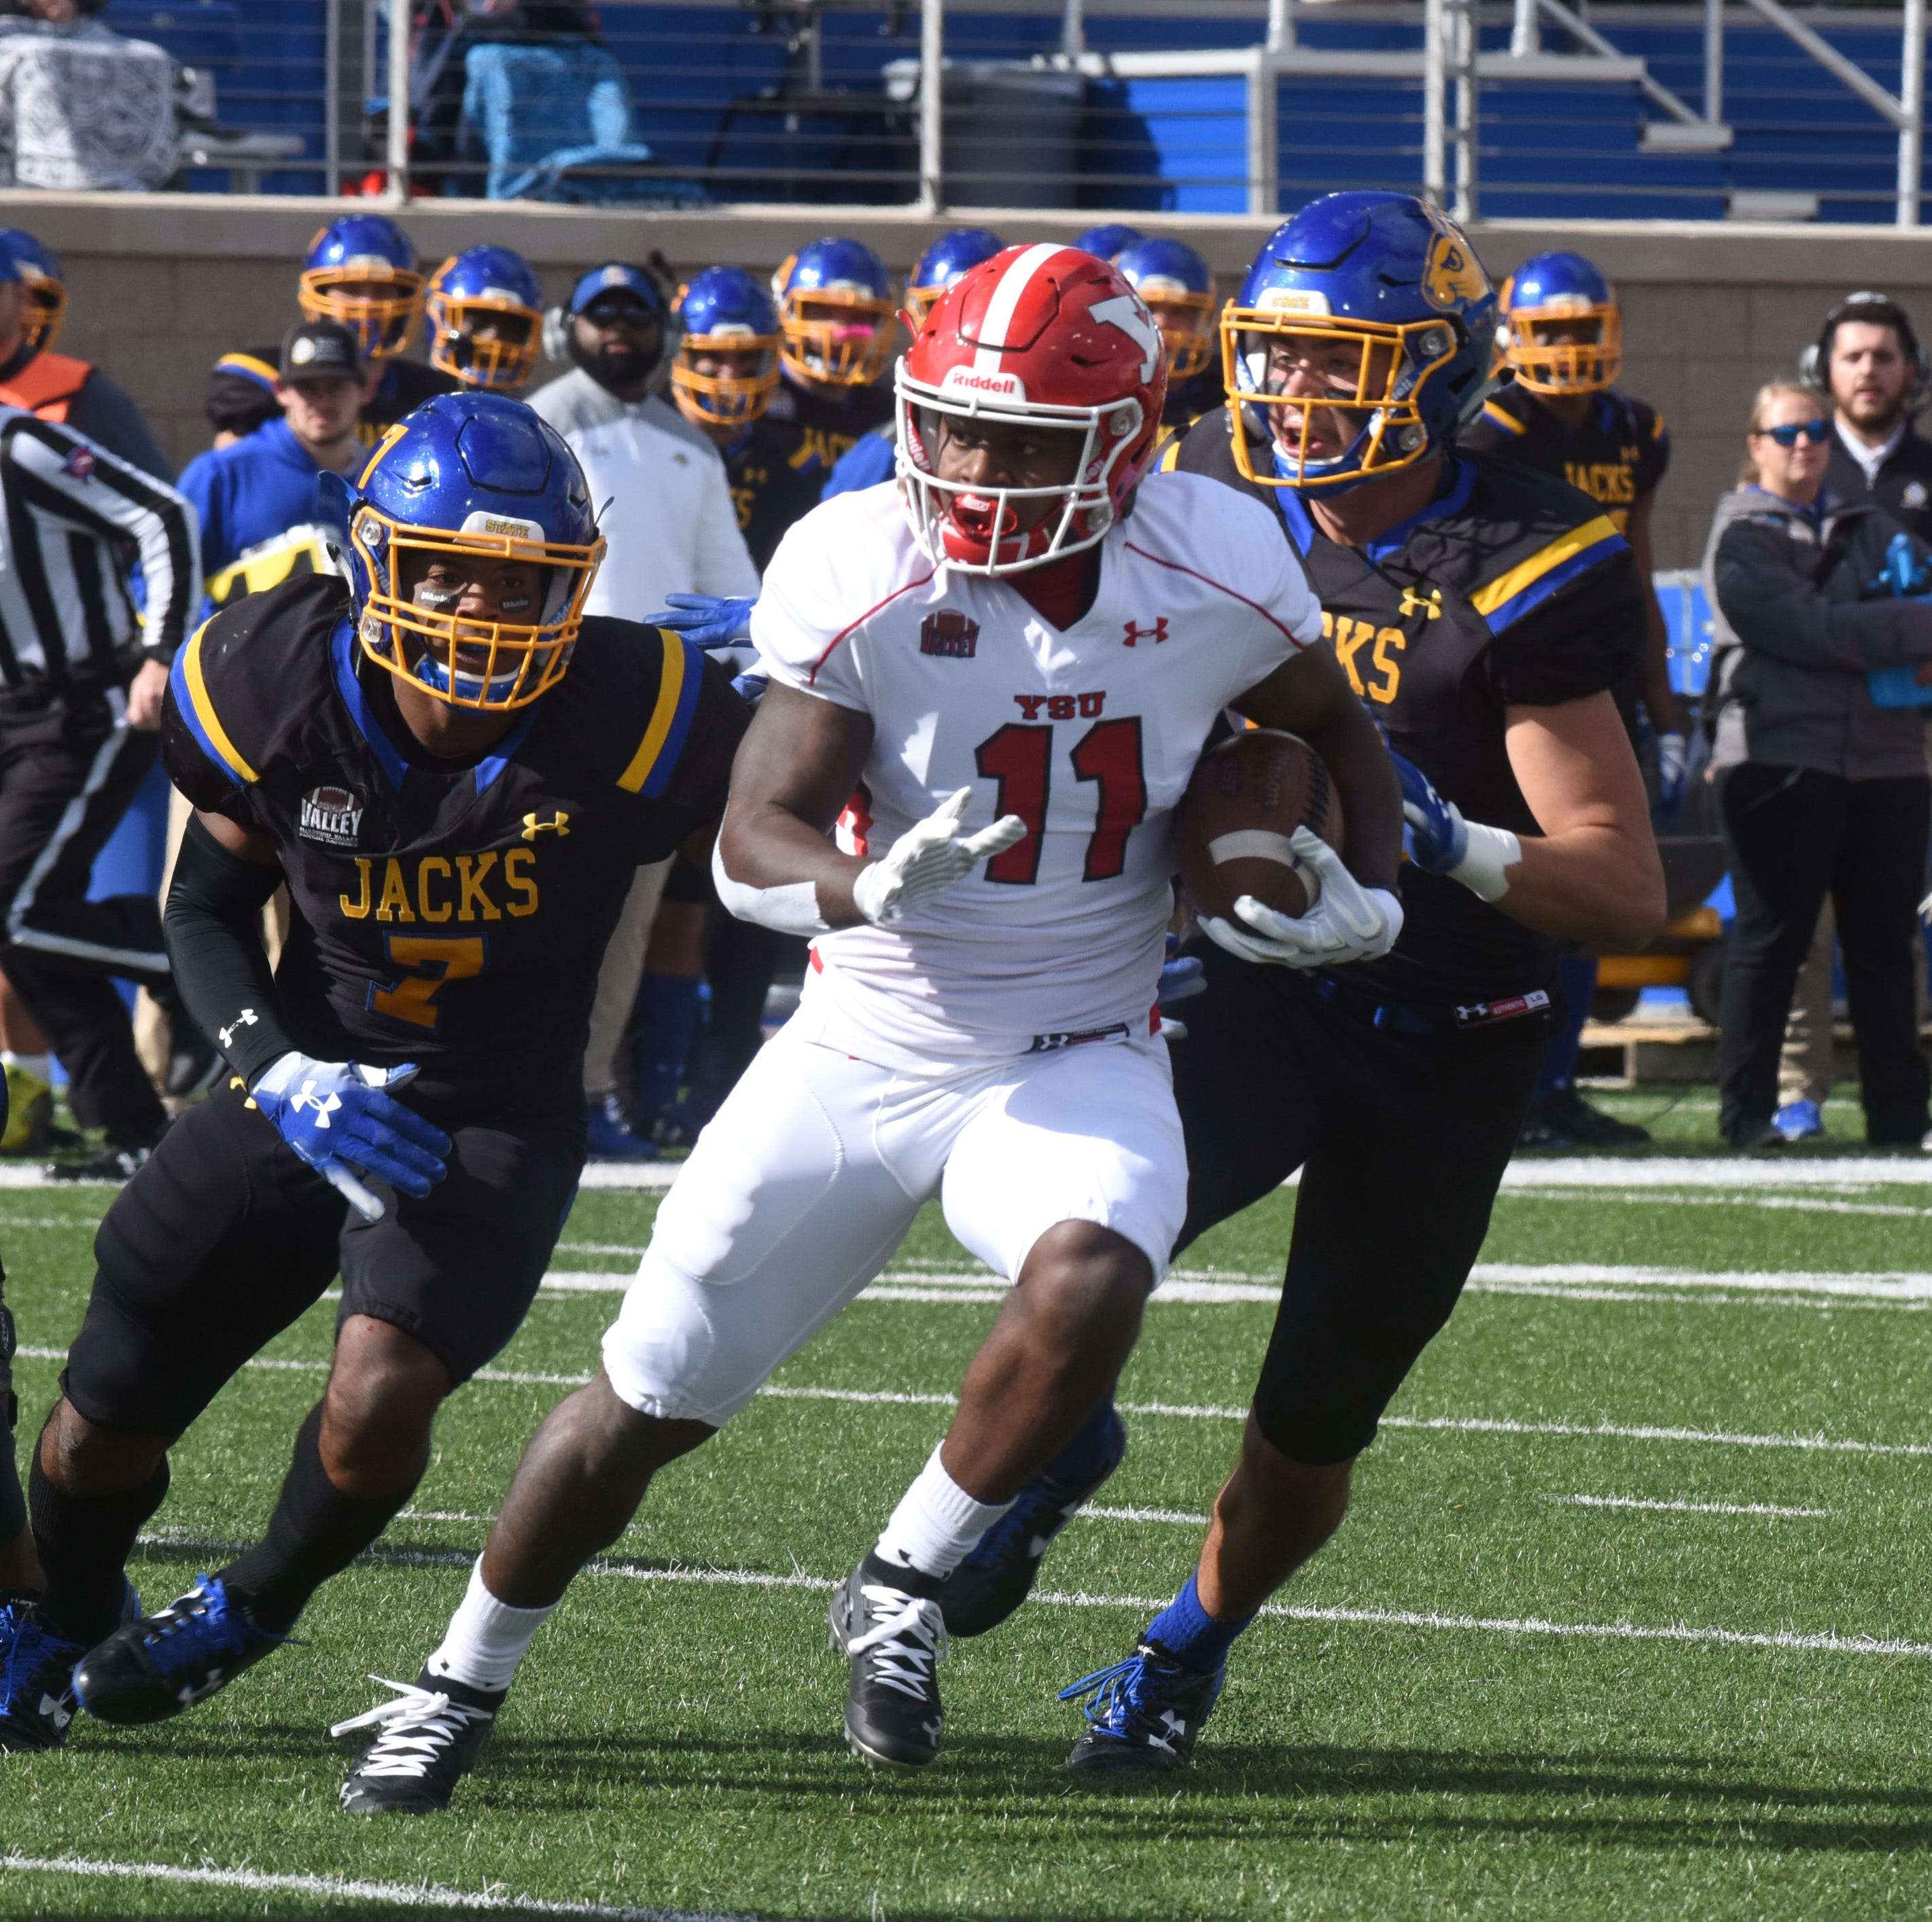 South Dakota State notebook: How the Jacks fixed their defense in one week